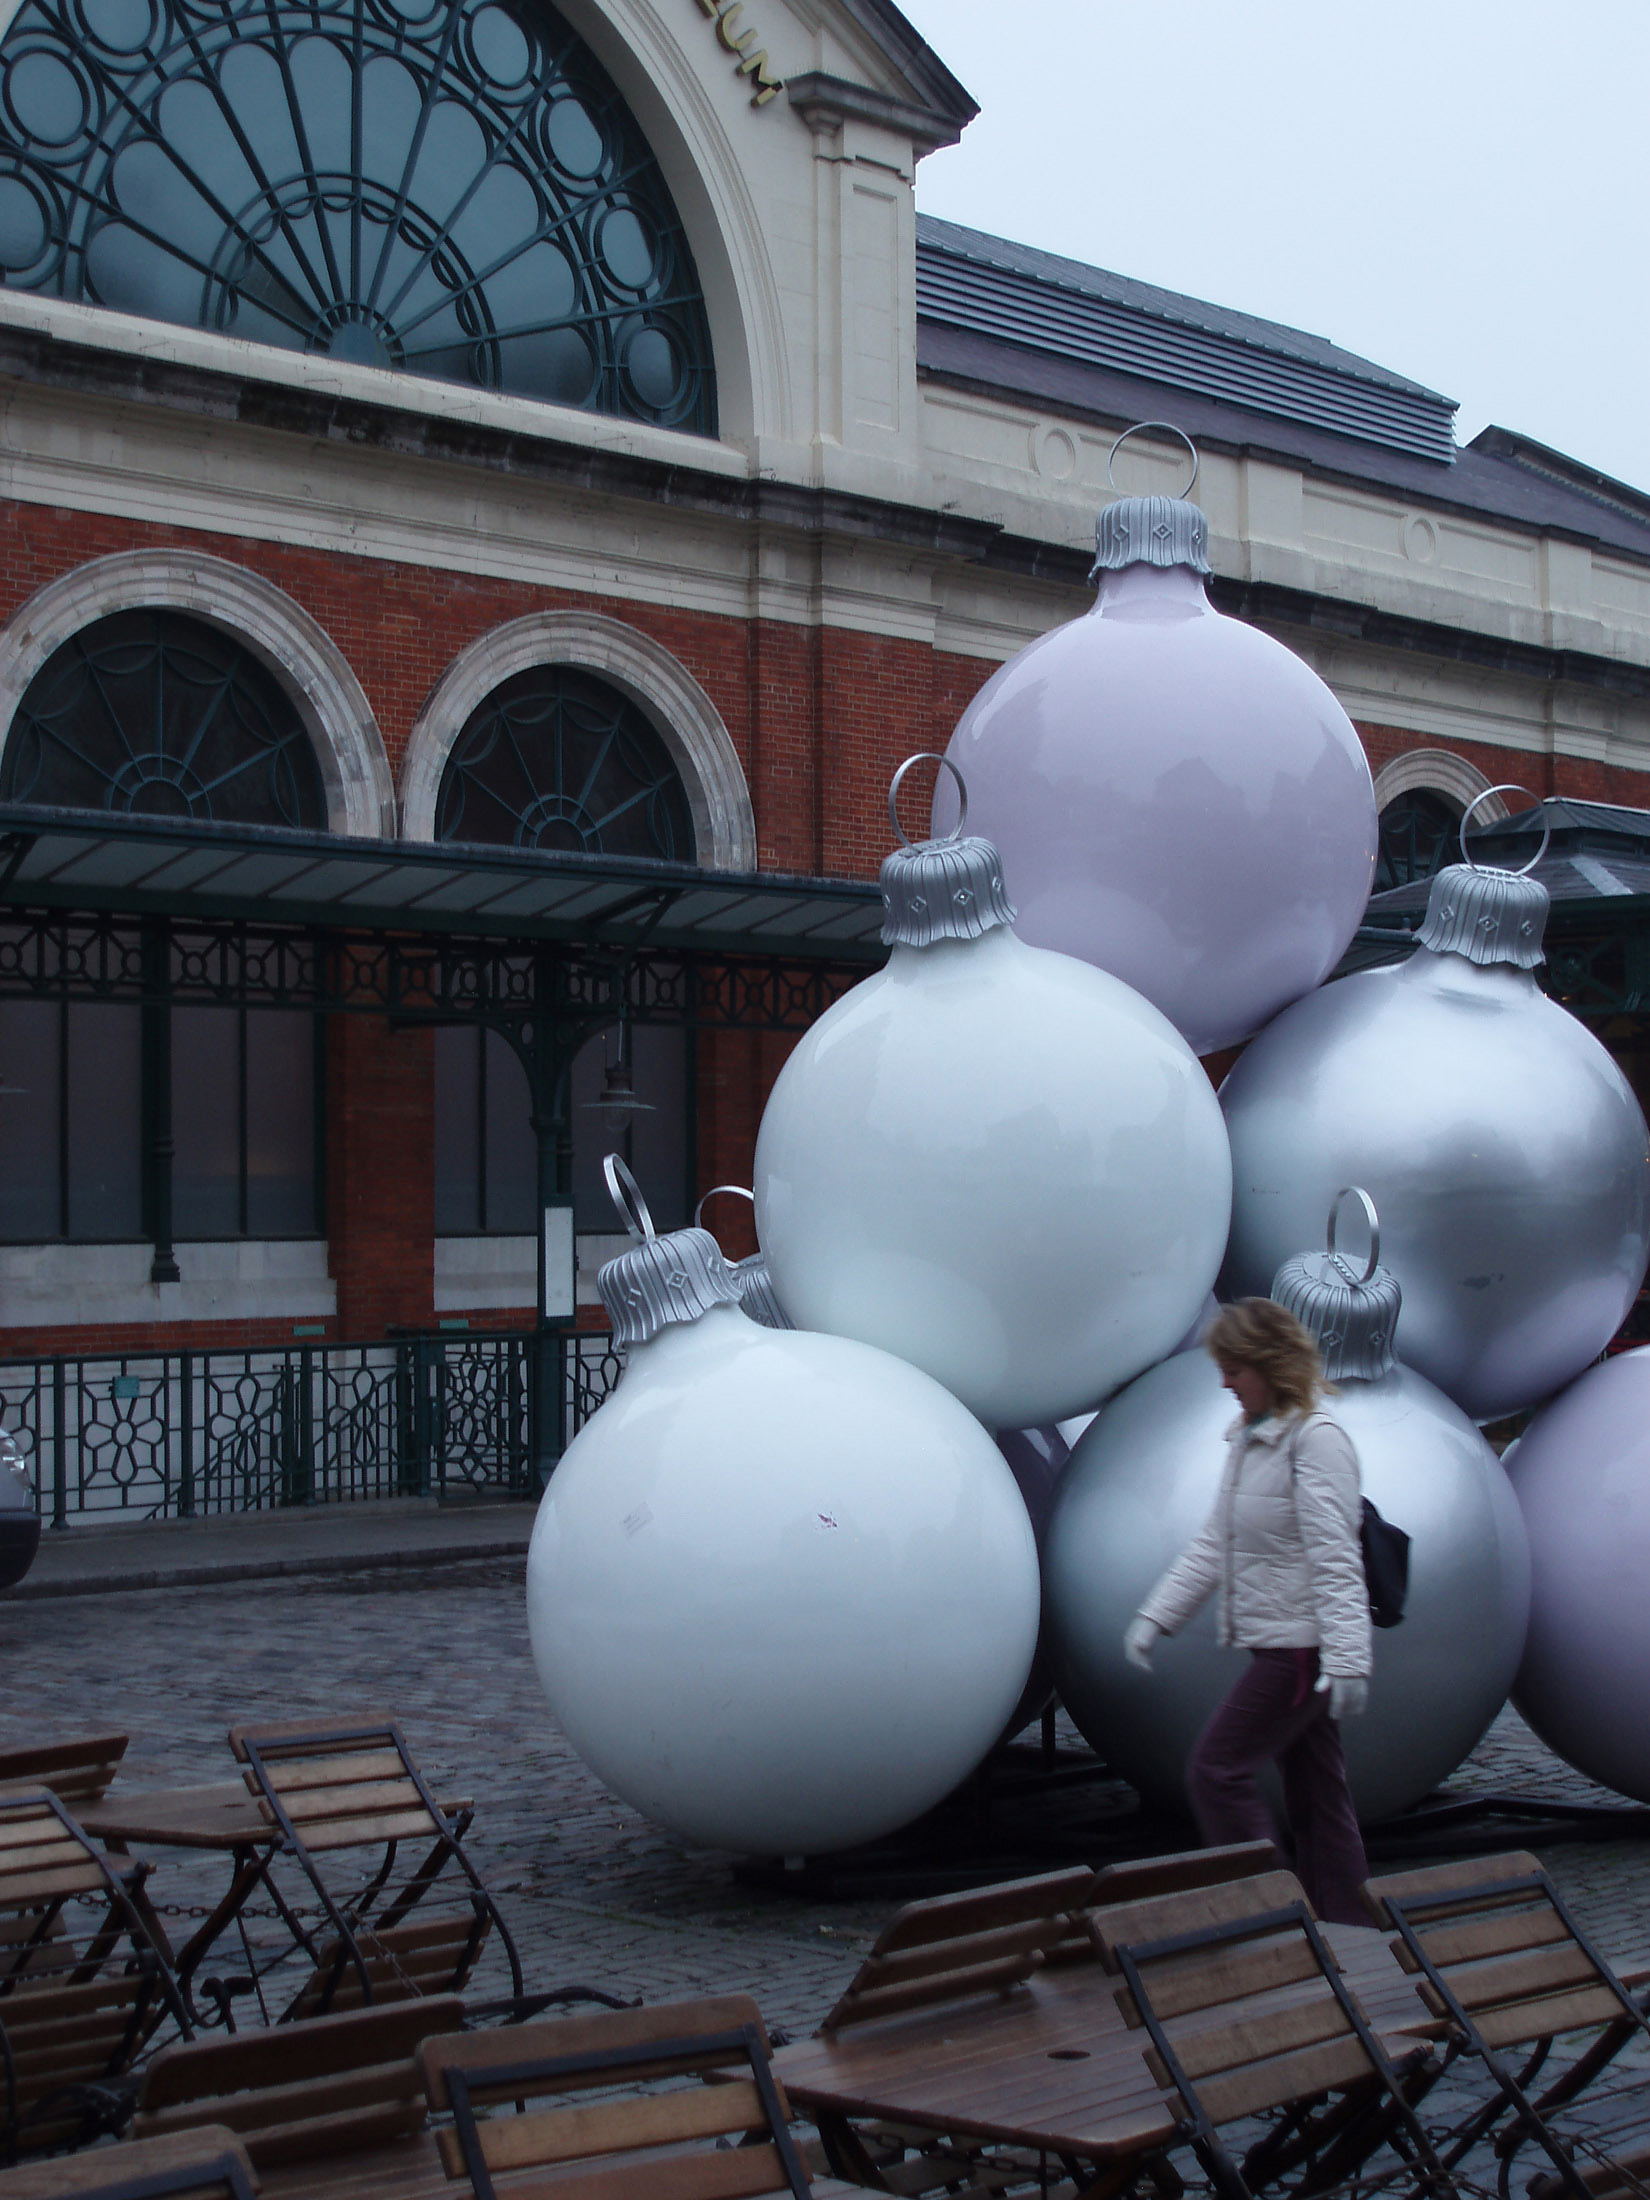 Covent Gardens display of Christmas decorations with a woman walking past a stack of large silver baubles near on open-air restaurant , London, England